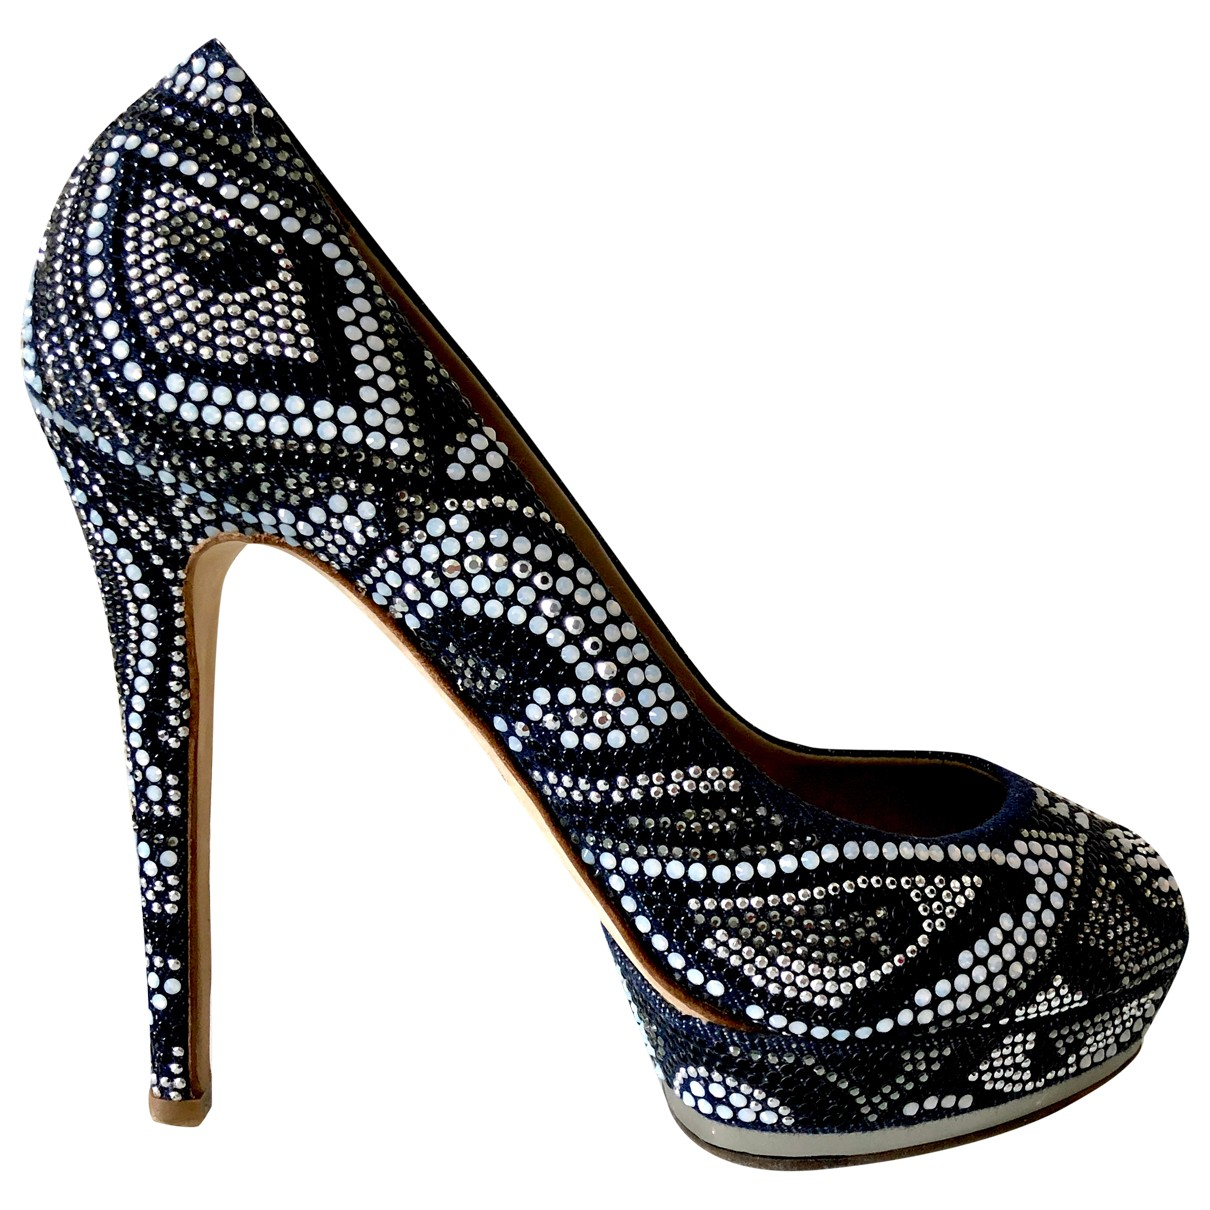 Le Silla \N Pumps in  Marine Leinen